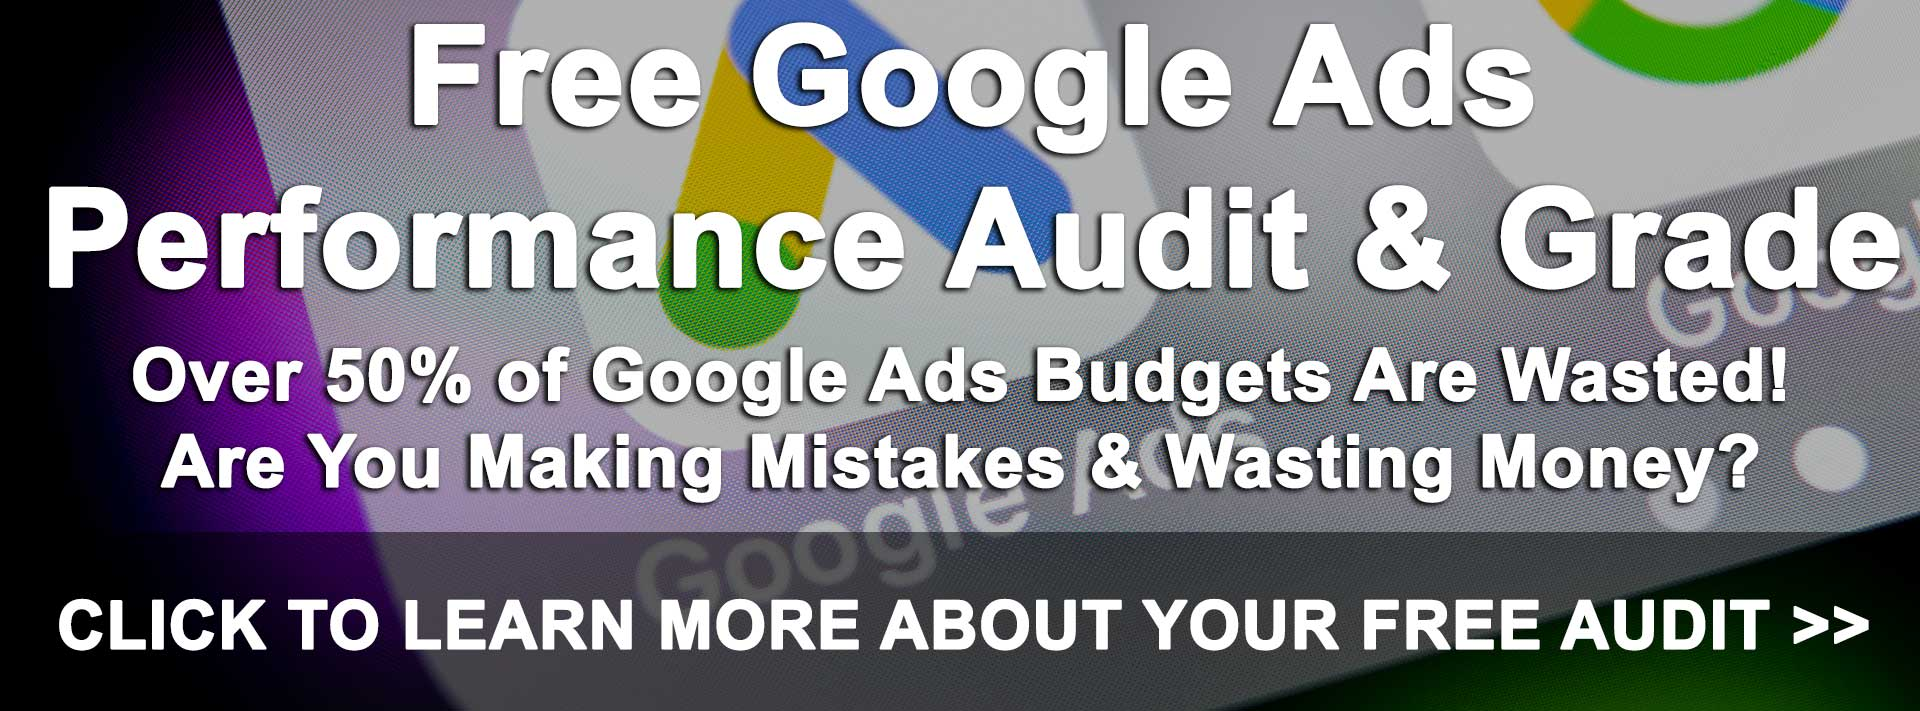 Free Google Ads Performance Audit & Grade